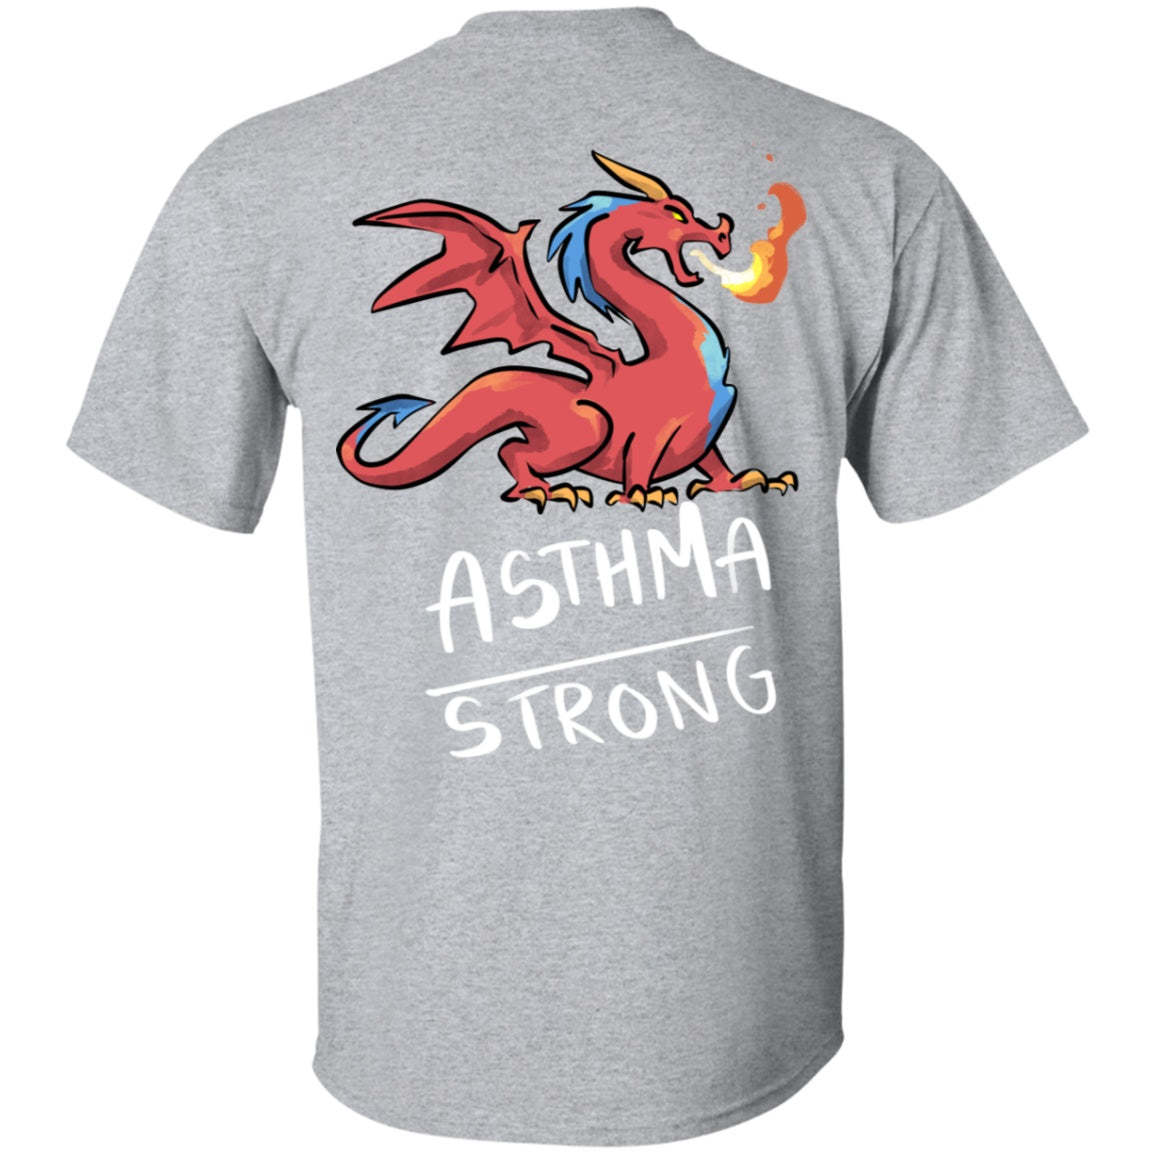 Asthma Strong Dragon Unisex T-Shirt - The Unchargeables